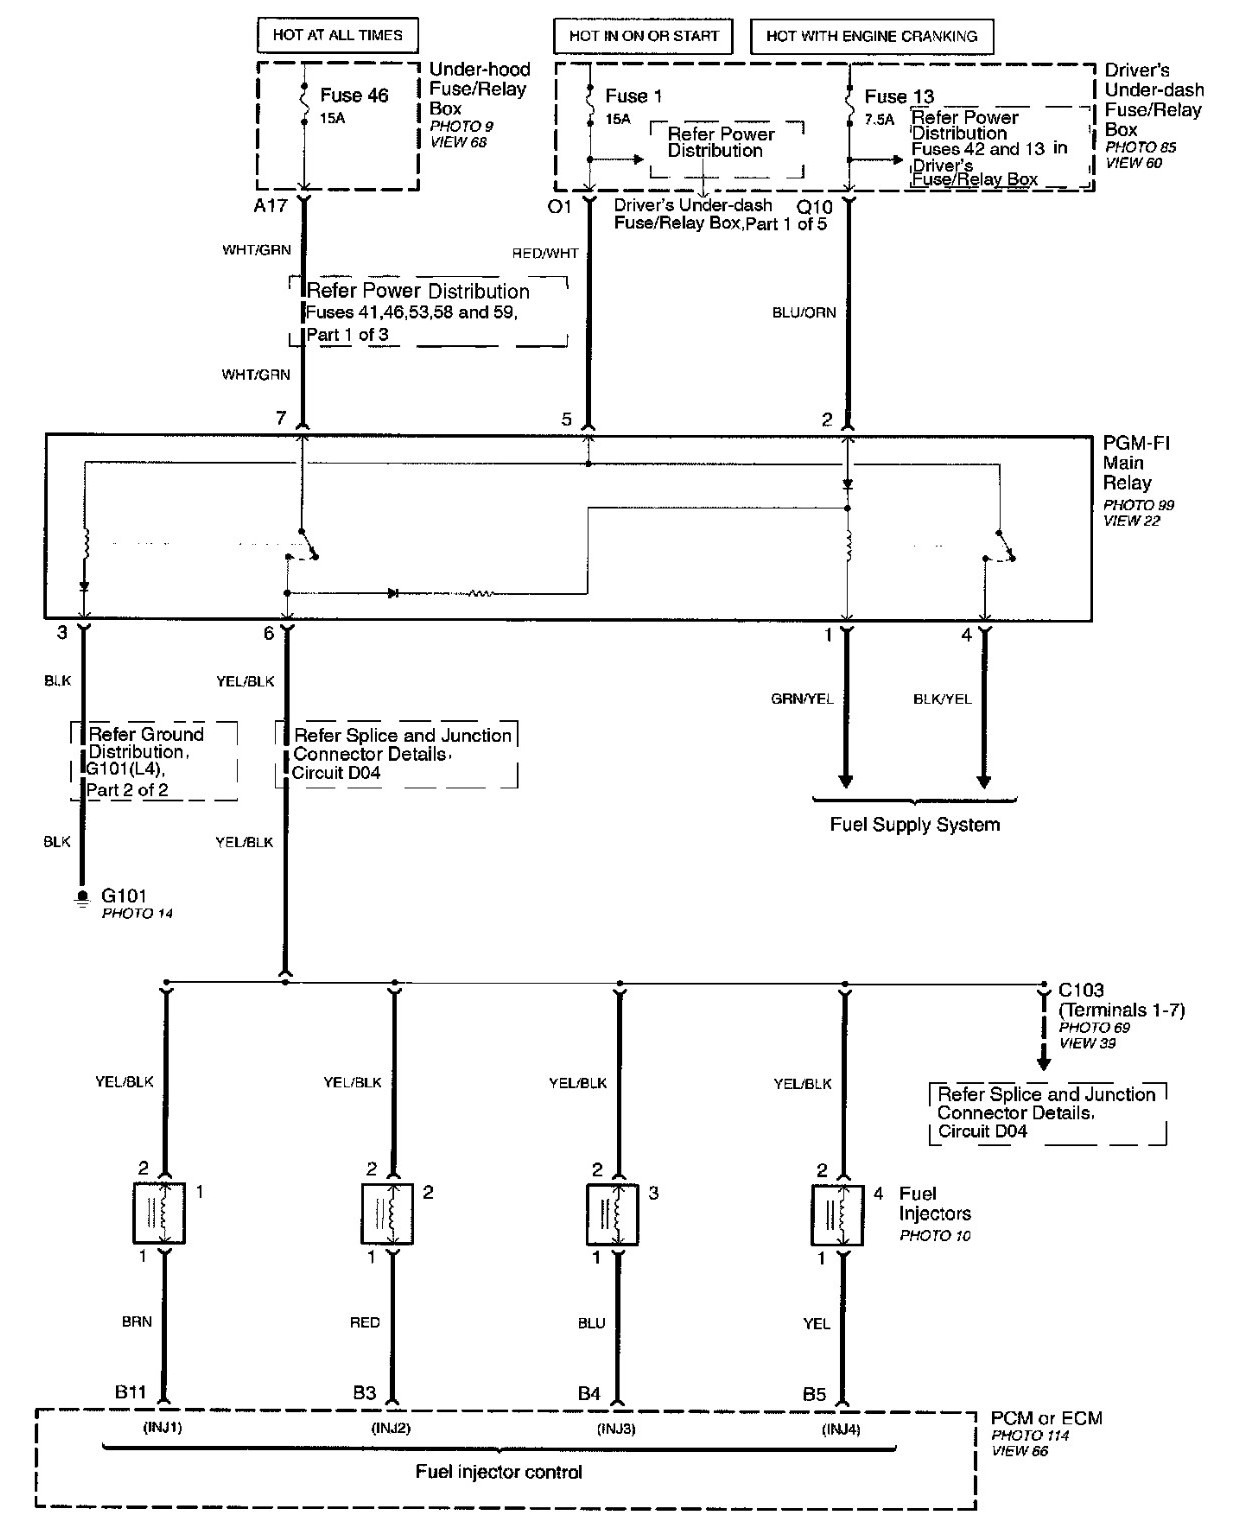 Honda Stereo Wiring Diagram : Honda accord wiring diagram free engine image